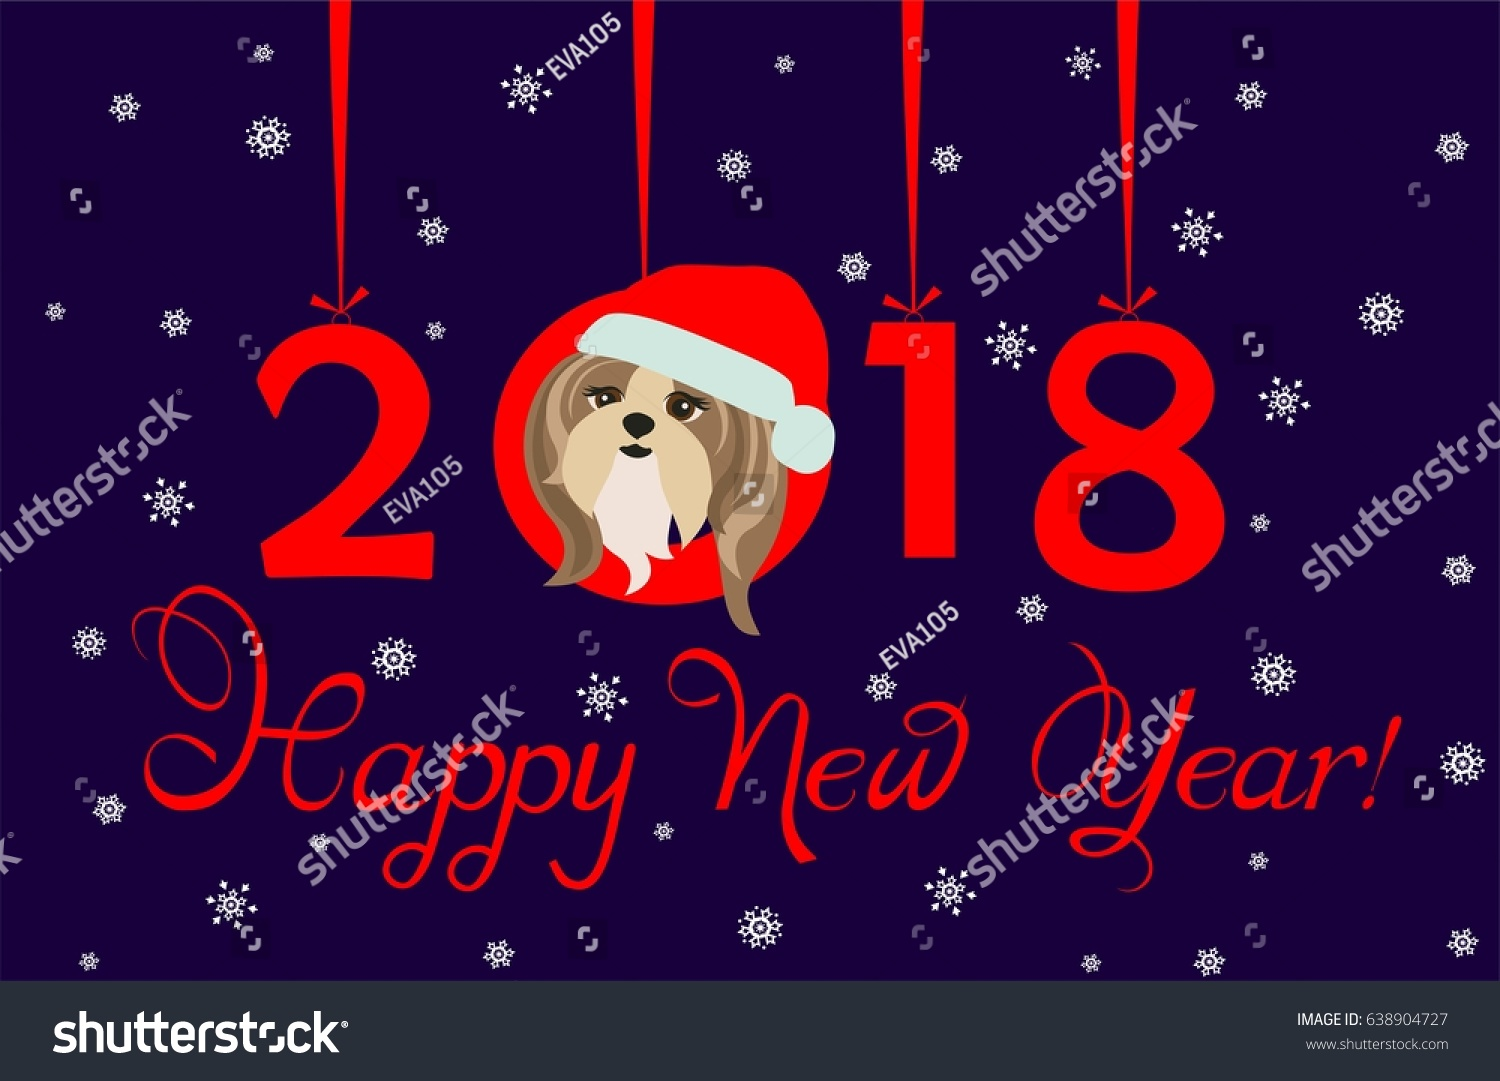 happy new year 2018 greeting banner with hanging xmas paper numbers and funny puppy